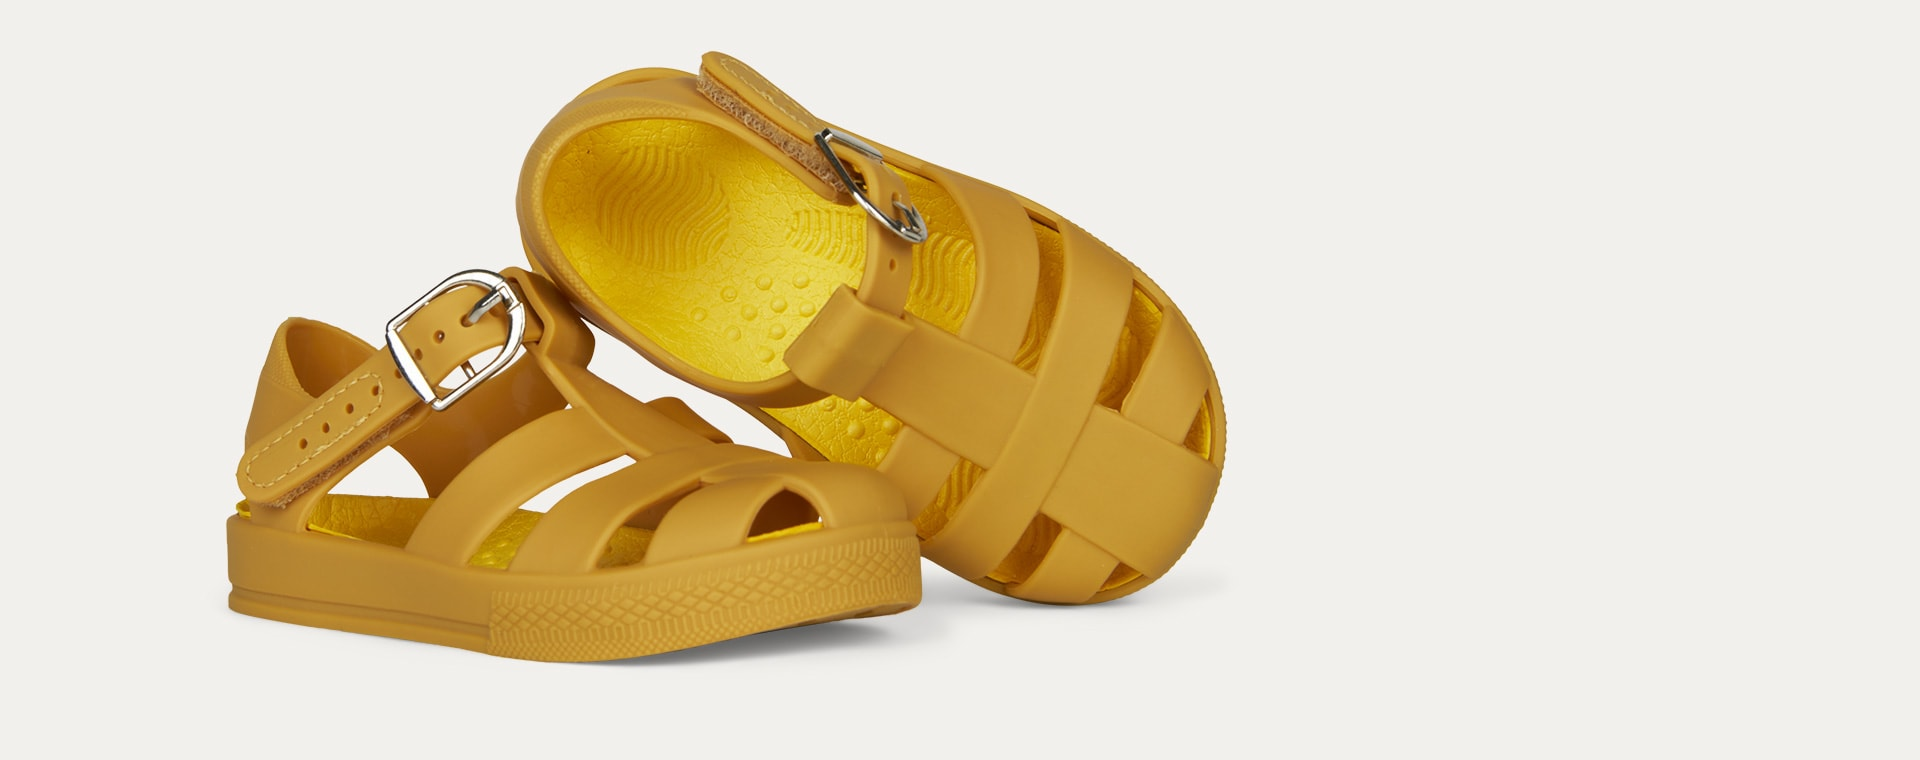 Honey KIDLY Label Jelly Sandal